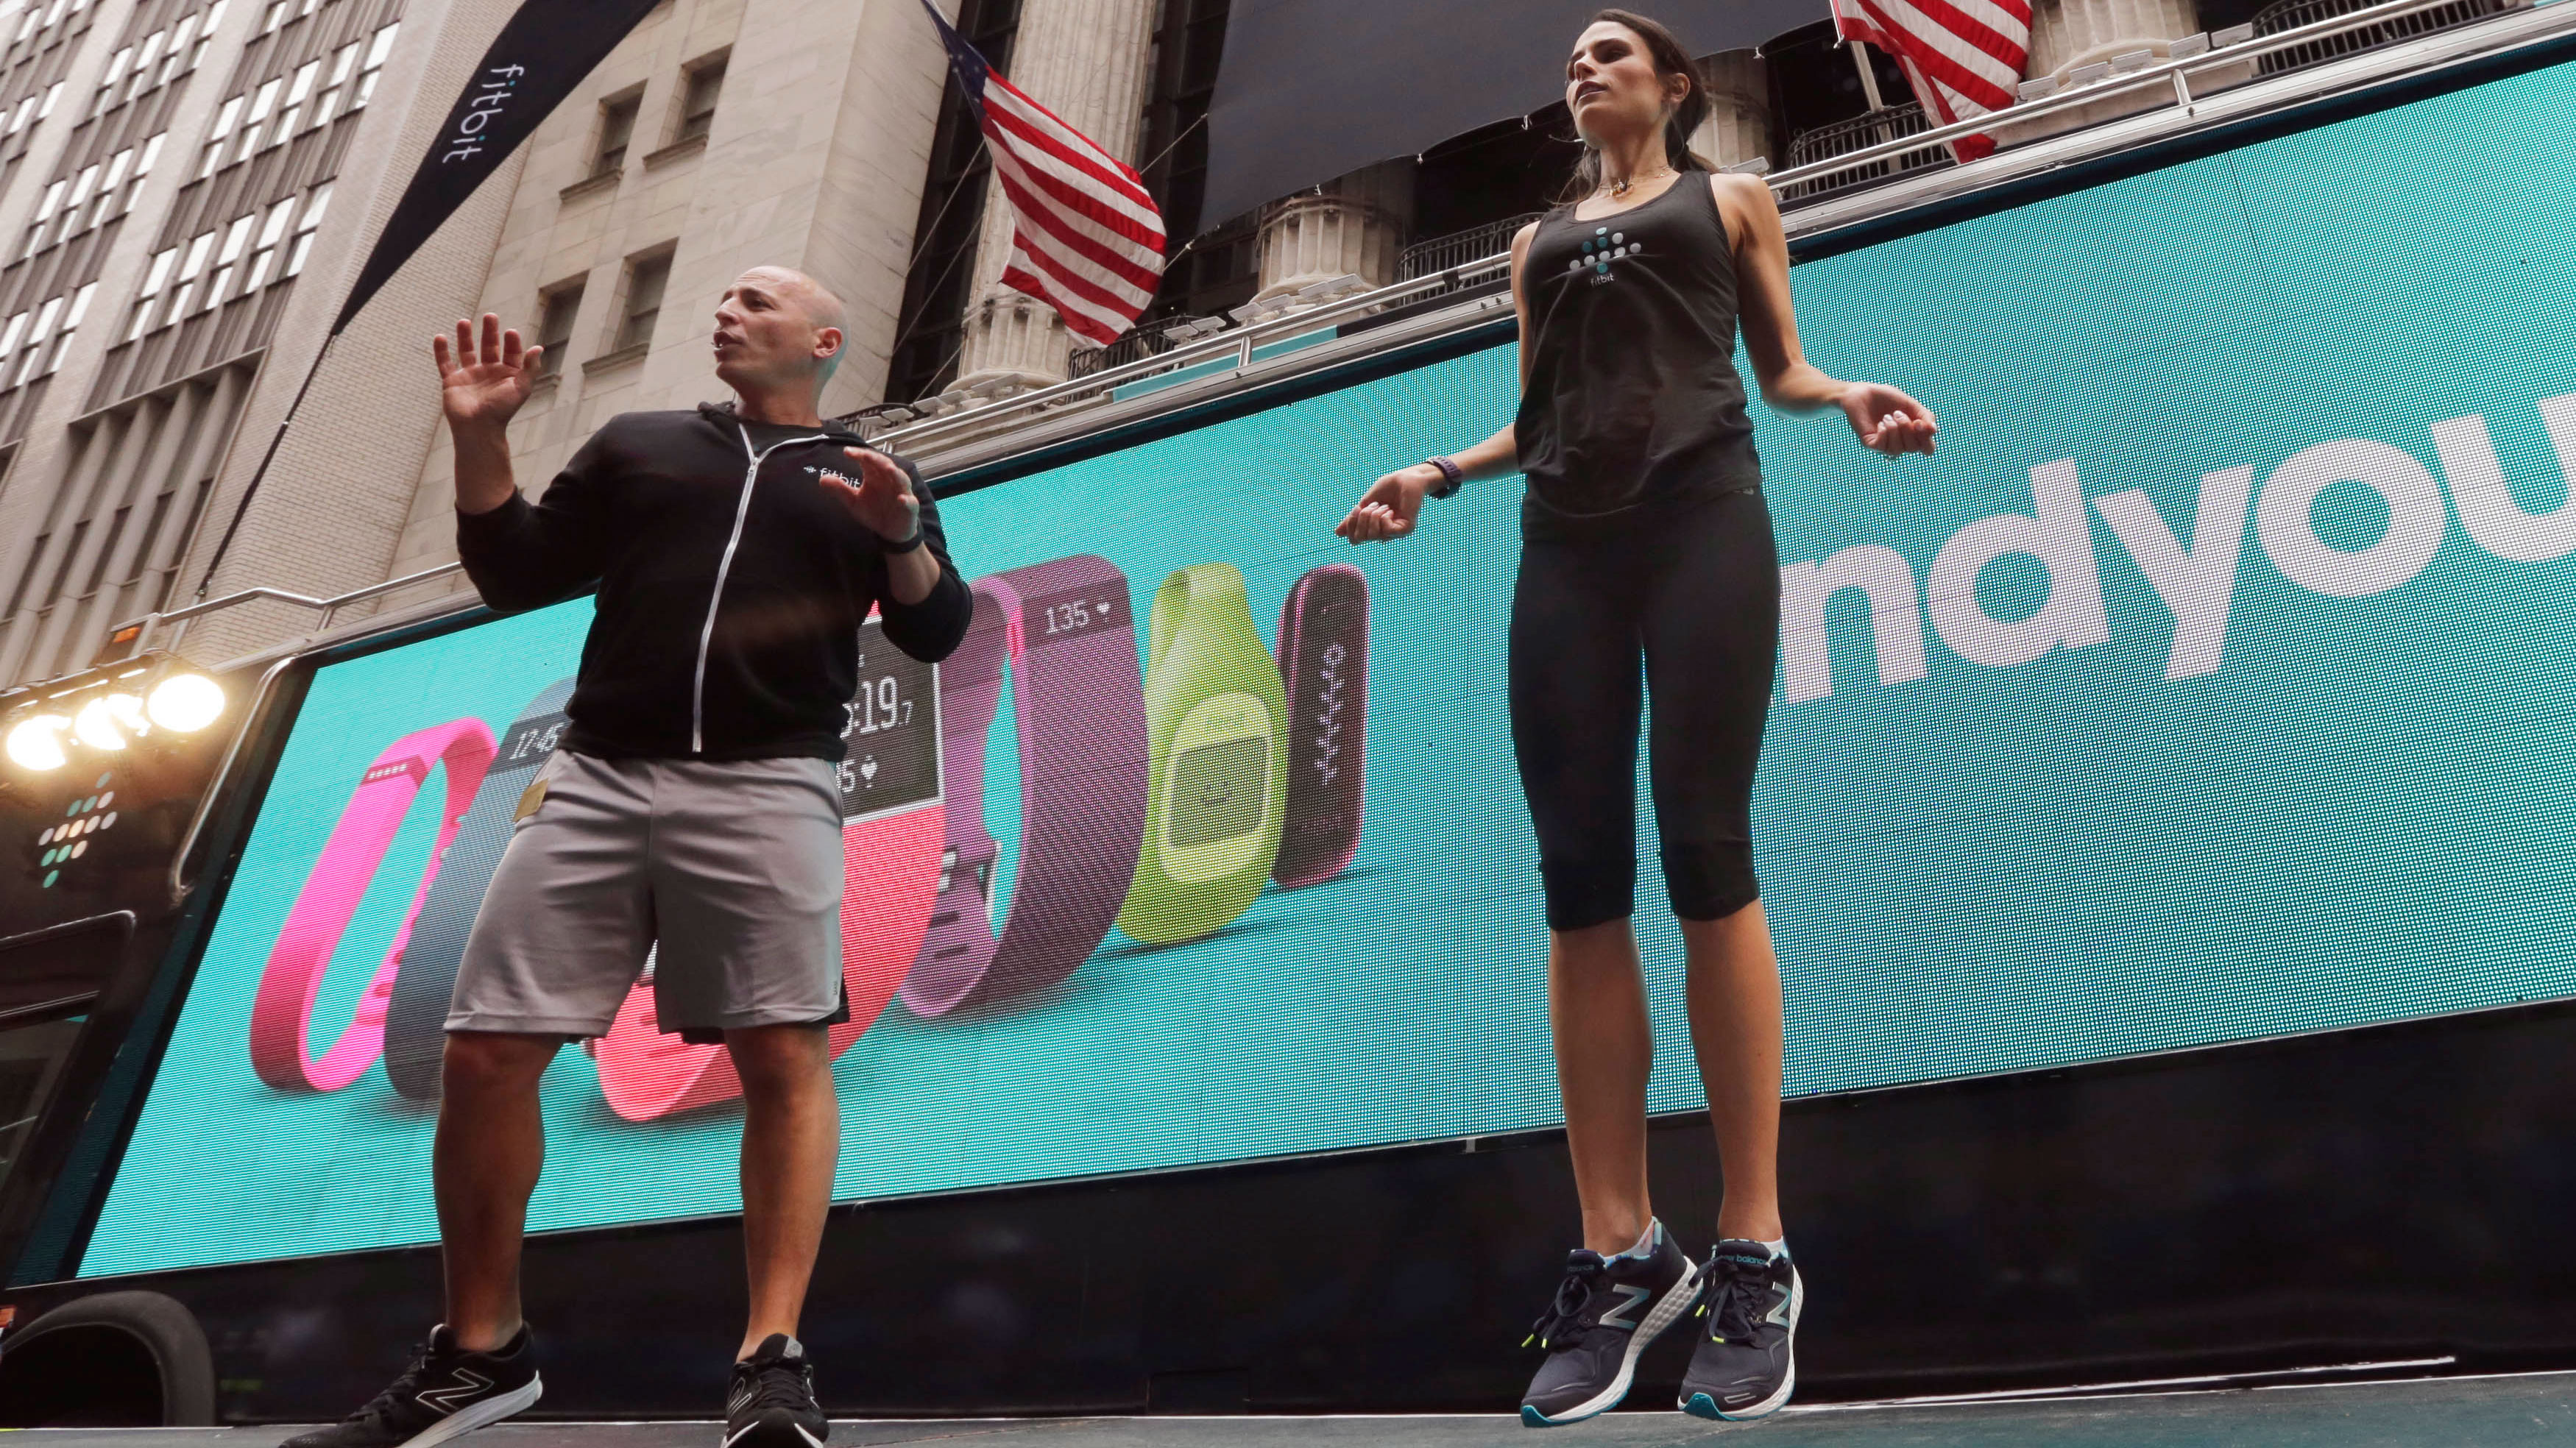 Fitness expert Harley Pasternak, left, and actress Jordana Brewster lead a work out, on behalf of Fitbit, in front of the New York Stock Exchange, Thursday, June 18, 2015. Fitbit flexed some muscle Thursday and its shares rocketed 50 percent higher in the first day of trading for the fitness tracking gear maker. (AP Photo/Richard Drew)